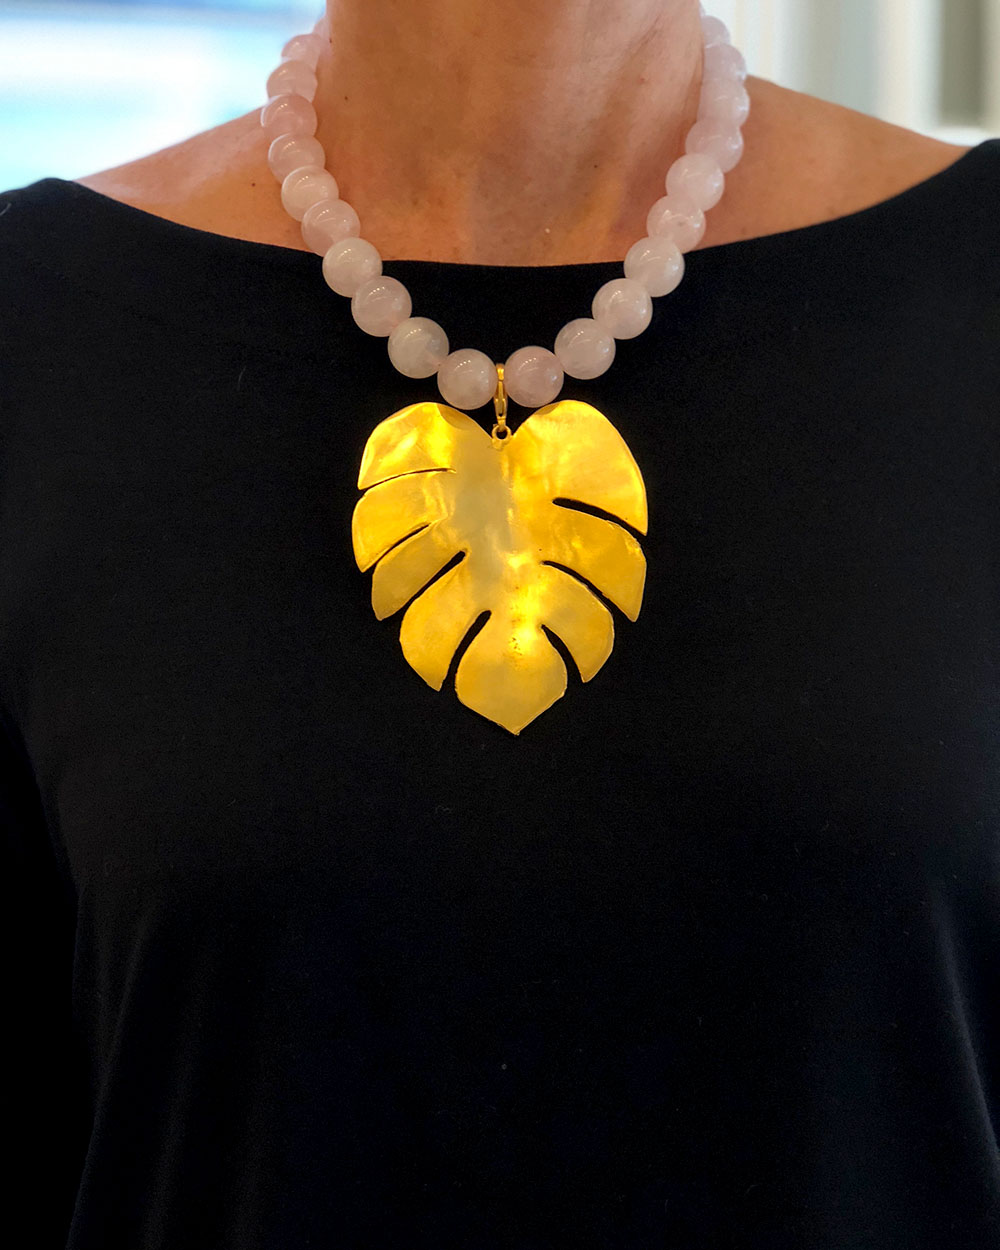 a-home-summit-tommy-mitchell-palm-necklace.jpg